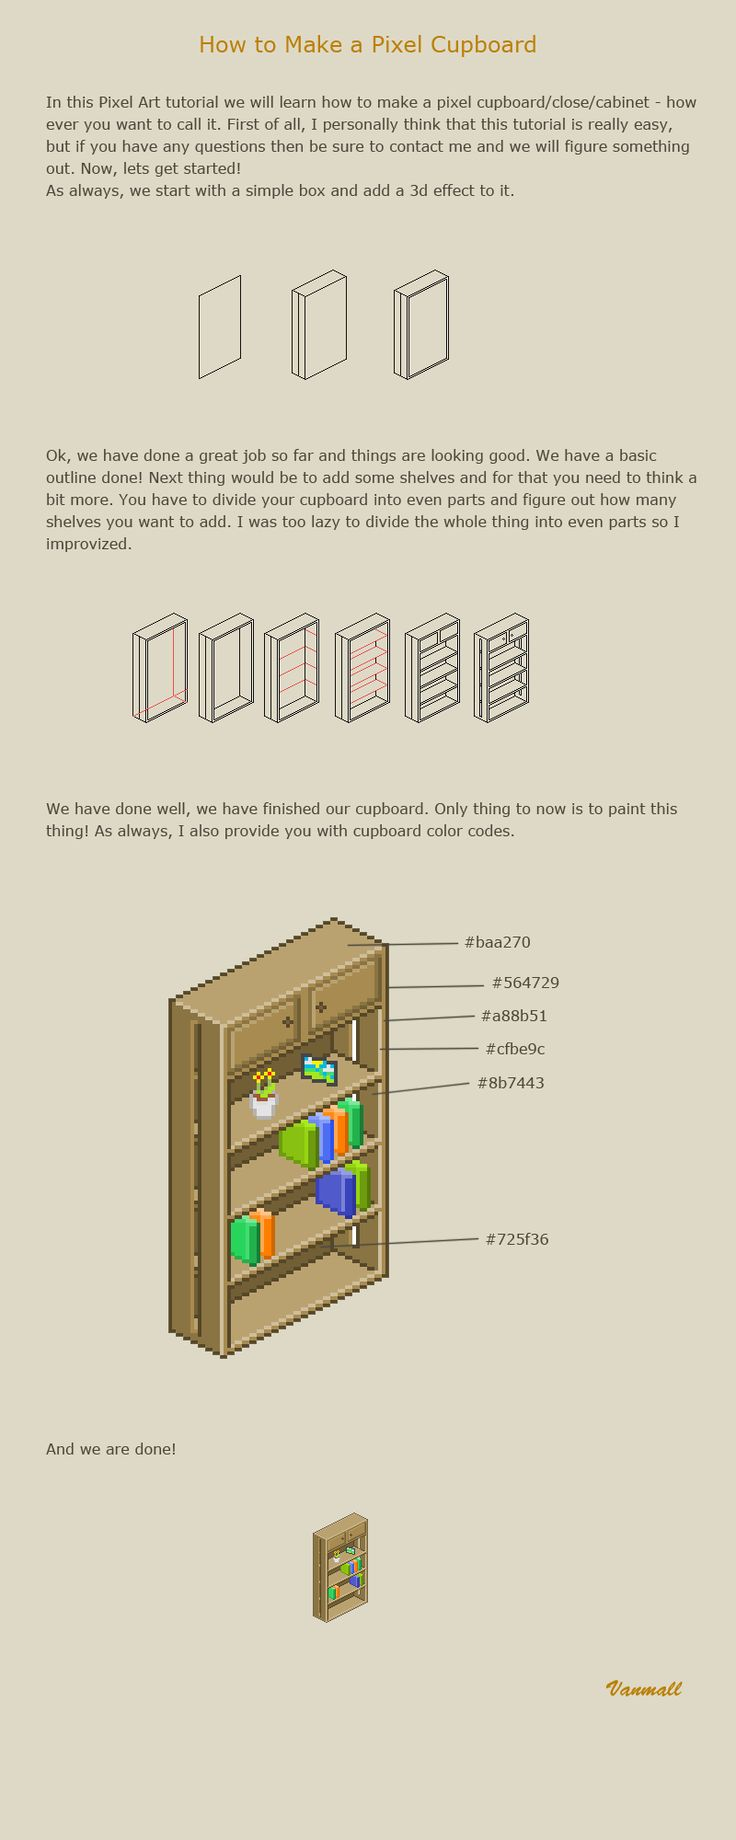 How to make a pixel cupboard by vanmall.deviantart.com on @deviantART